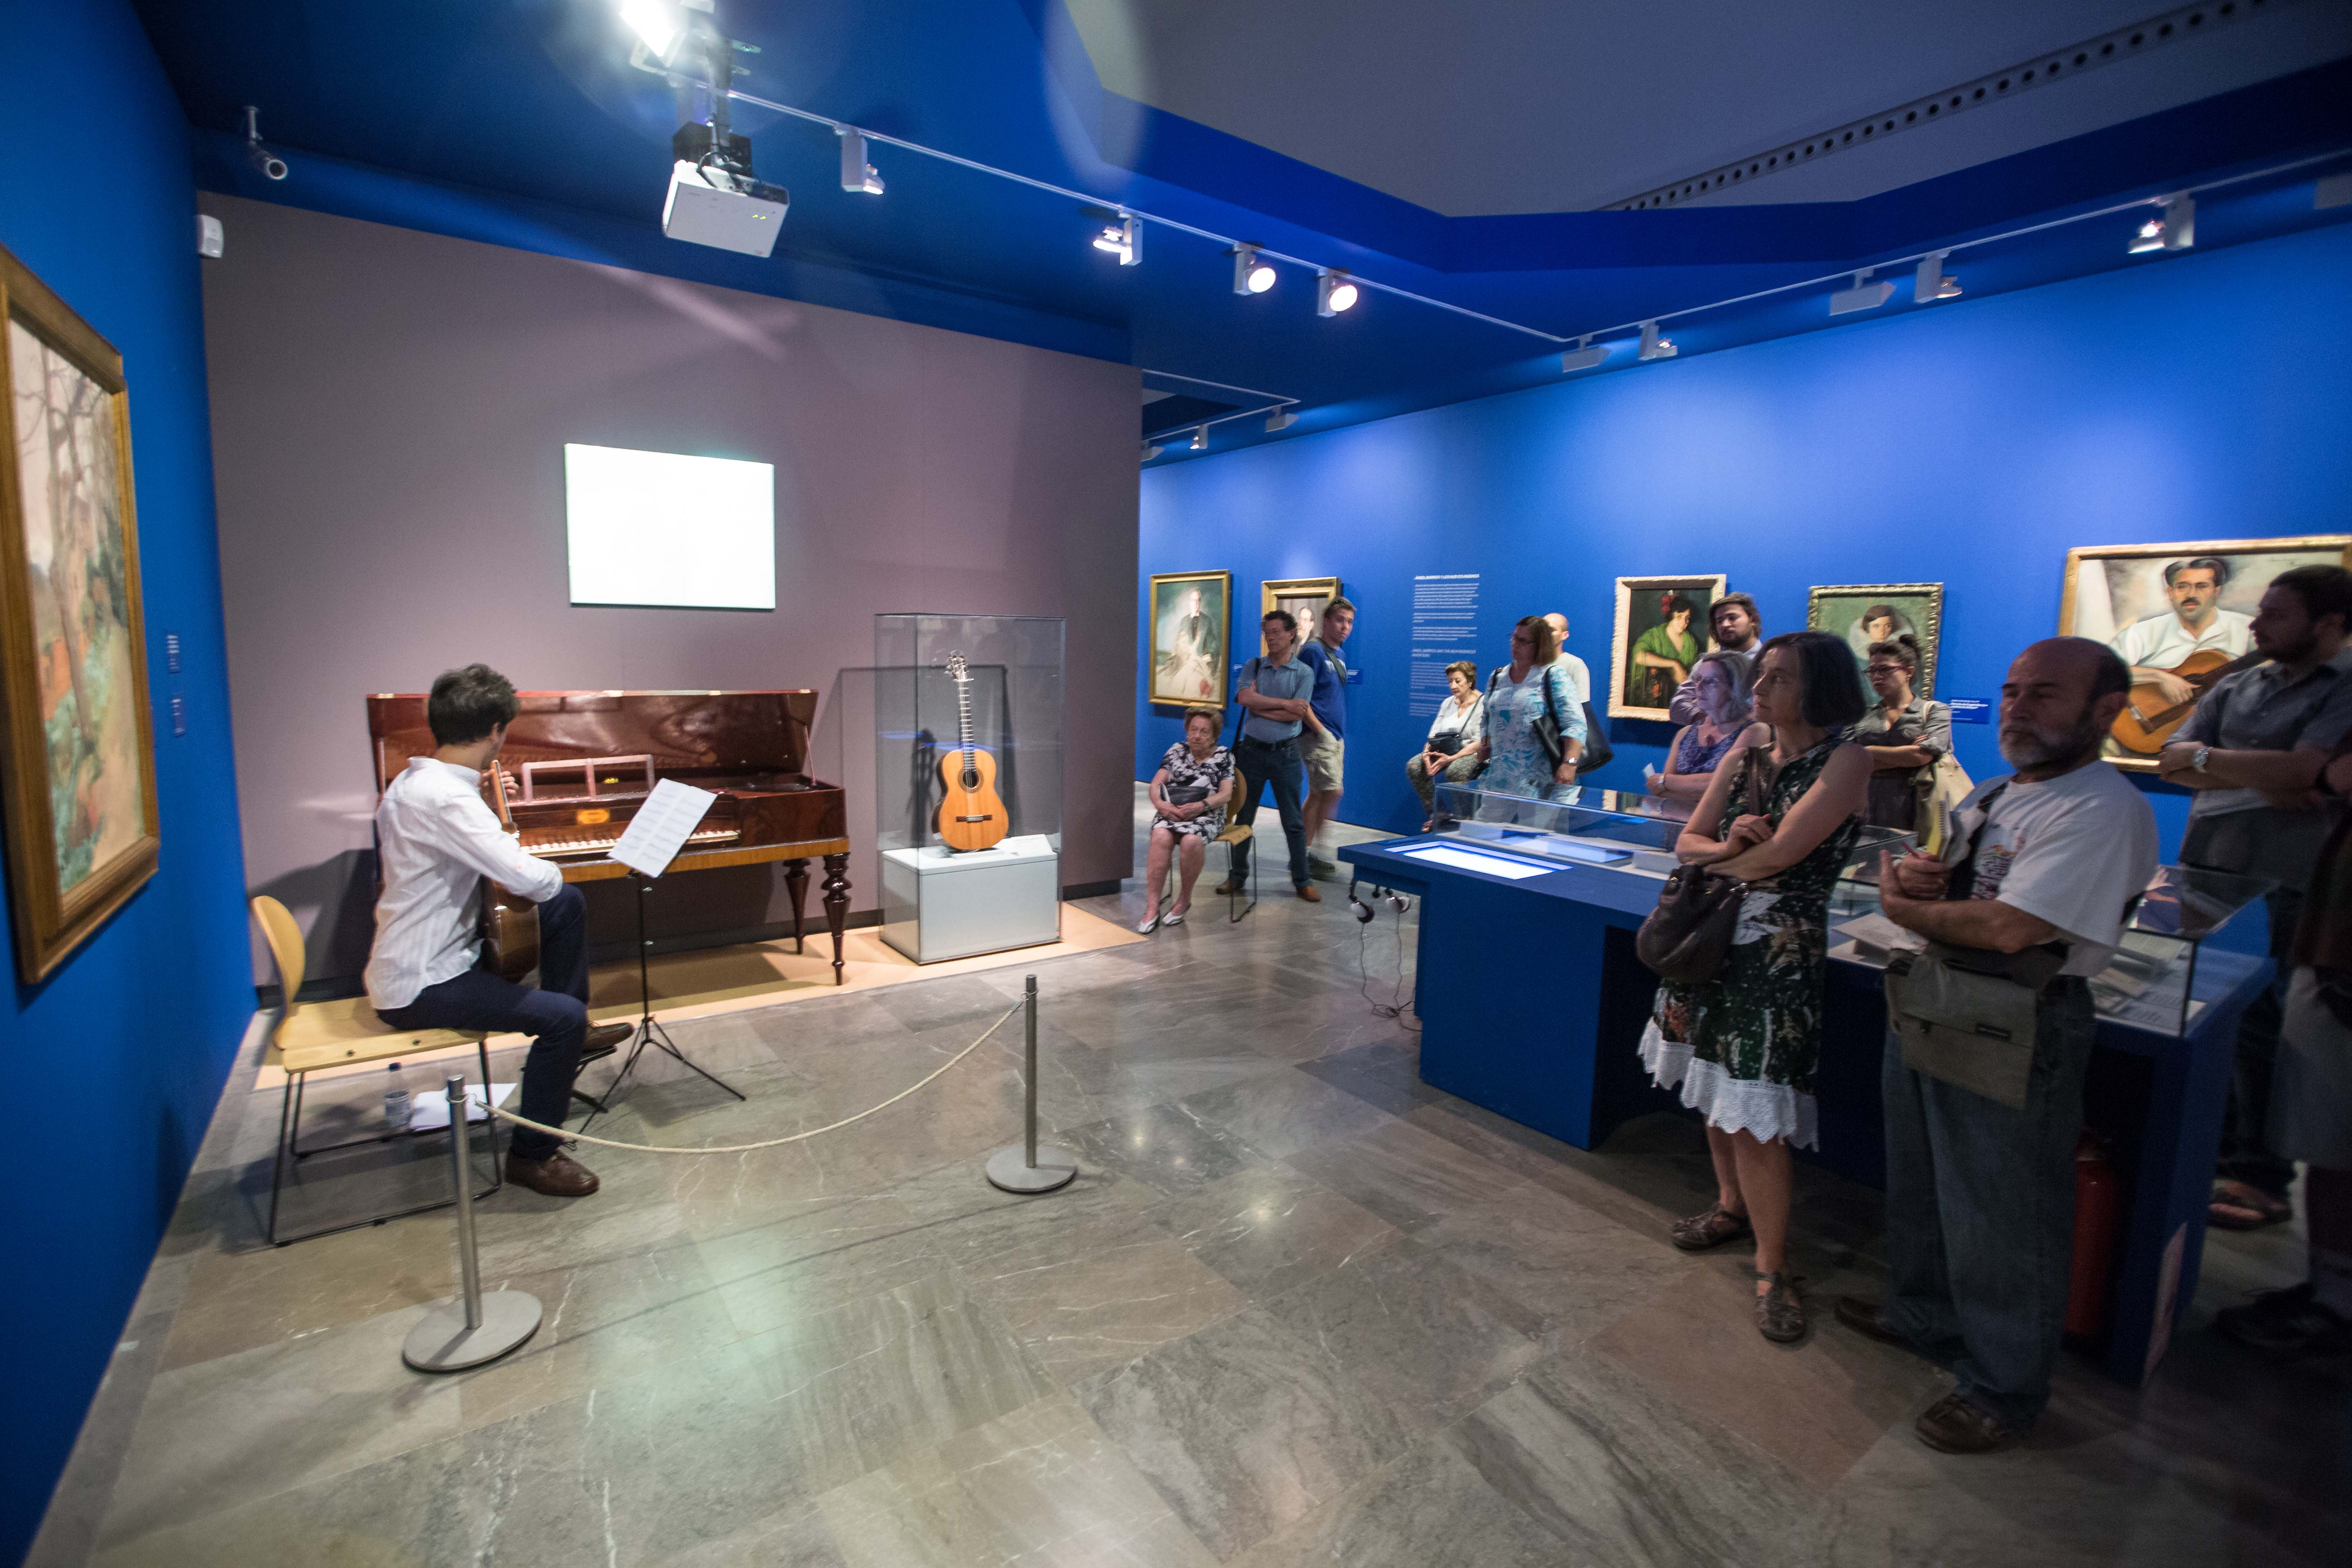 30,000 people have visited the exhibition 'Ángel Barrios, Creativity in the Alhambra'